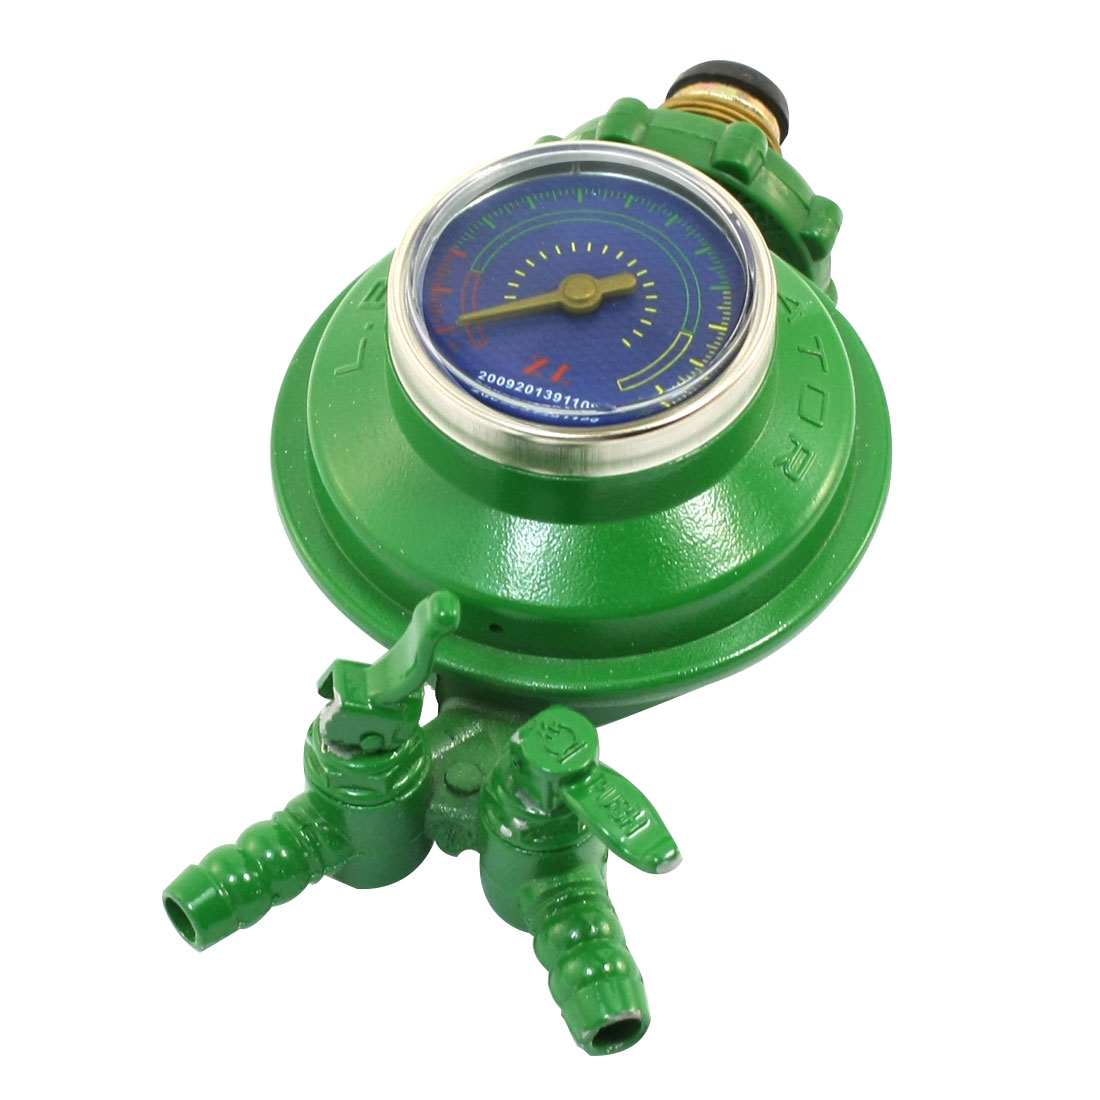 1 Inlet 2 Outlet Liquefied LGP Compressed Gas Pressure Regulator Green